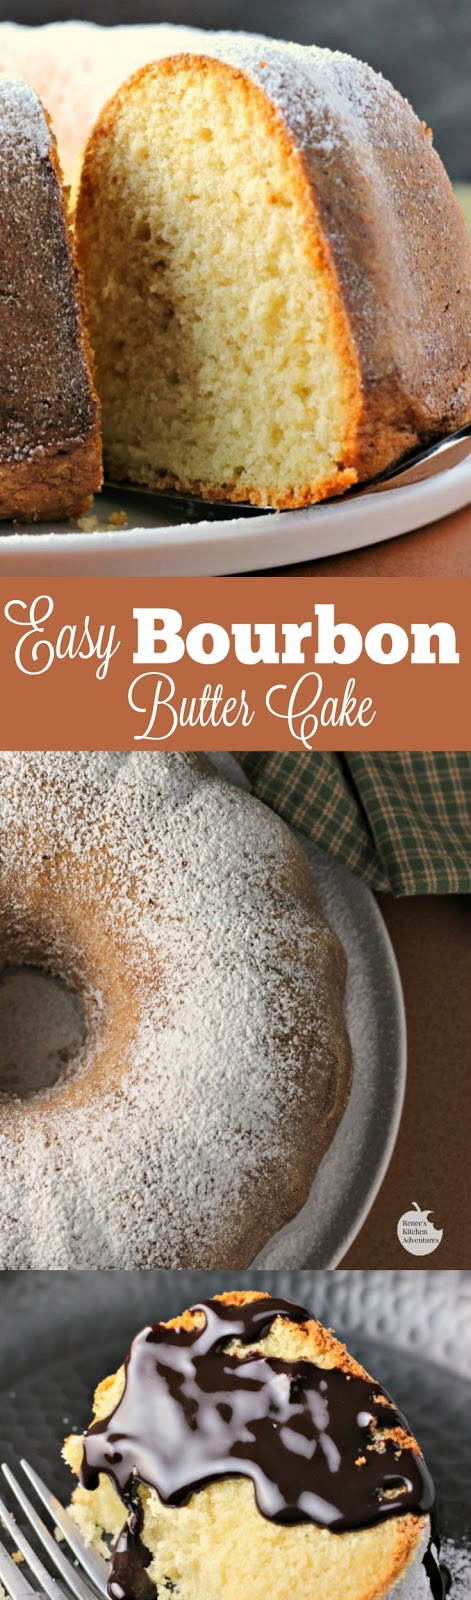 Easy Bourbon Butter Cake | by Renee's Kitchen Adventures - Easy dessert recipe for a moist and buttery cake infused with bourbon! Perfect for special occasions or holidays!